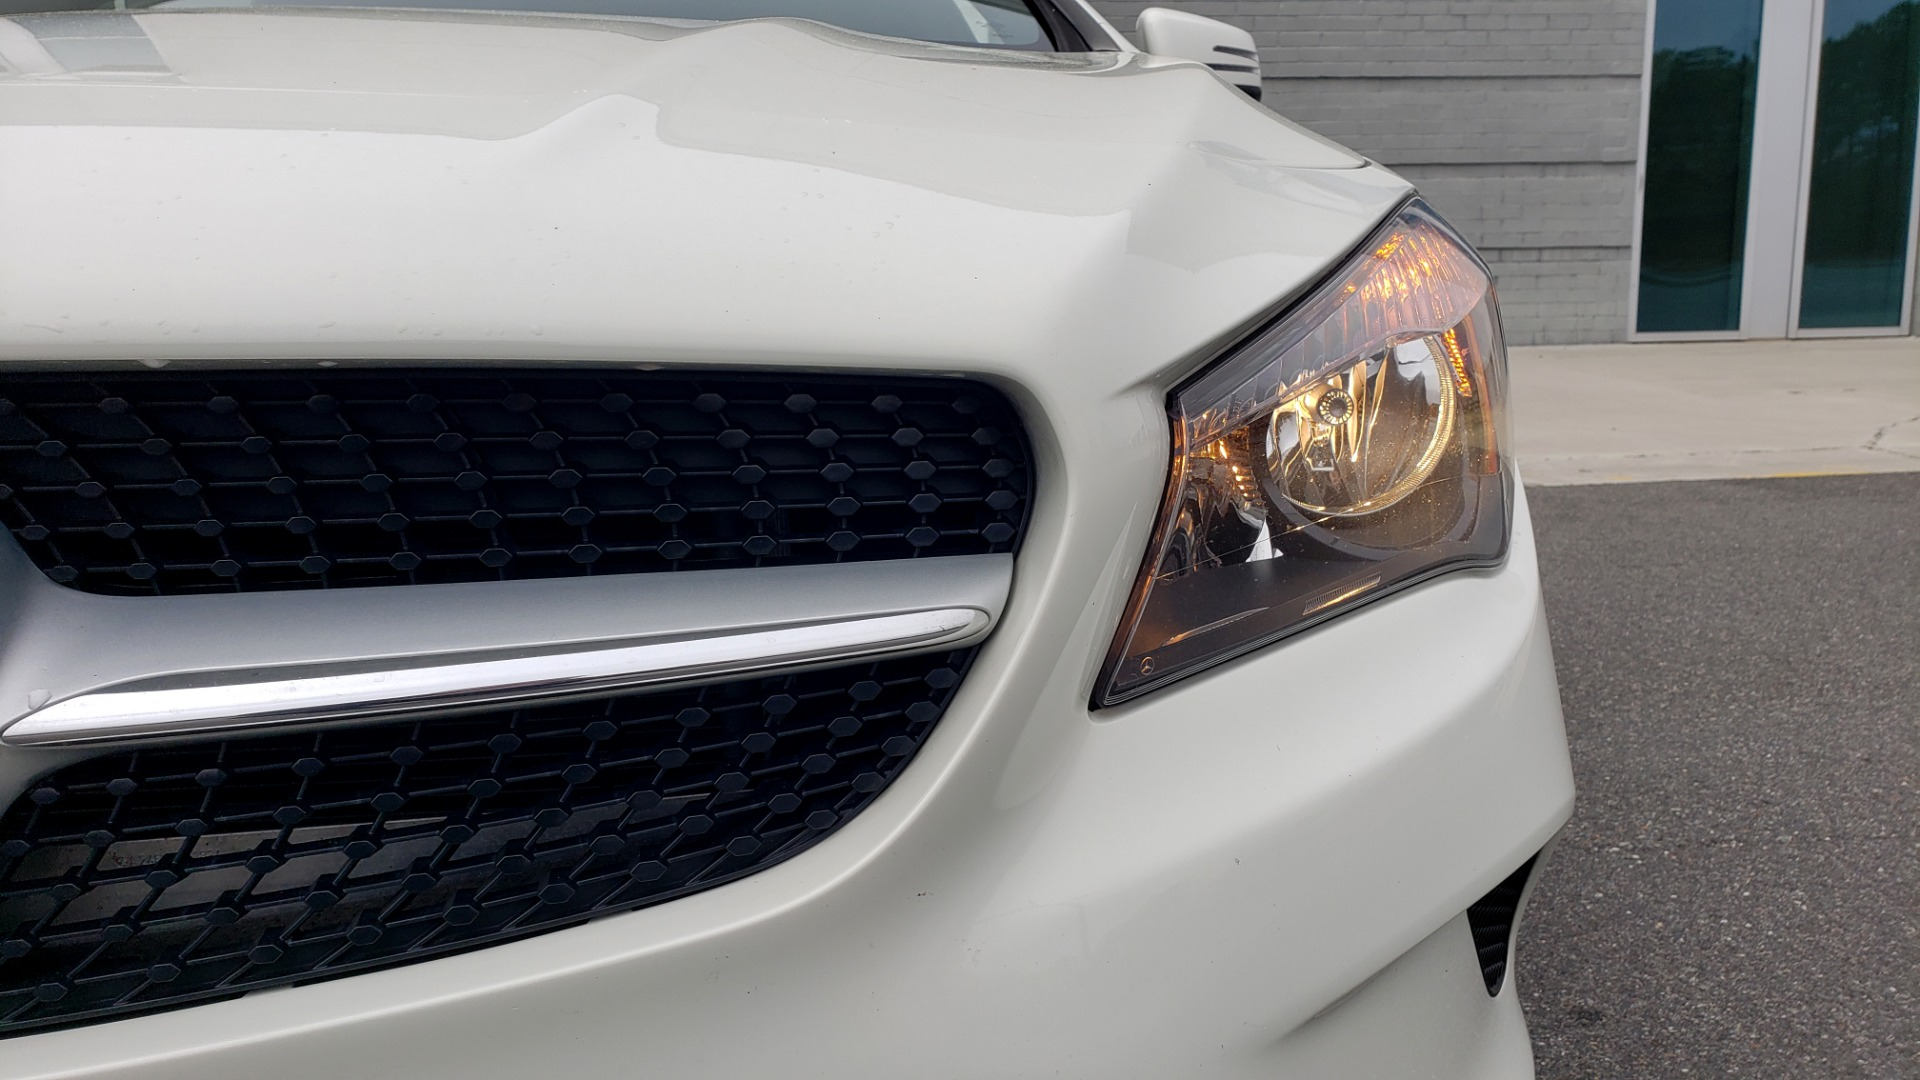 Used 2018 Mercedes-Benz CLA 250 PREMIUM / NAV / PANO-ROOF / APPLE CARPLAY / REARVIEW for sale $23,995 at Formula Imports in Charlotte NC 28227 21